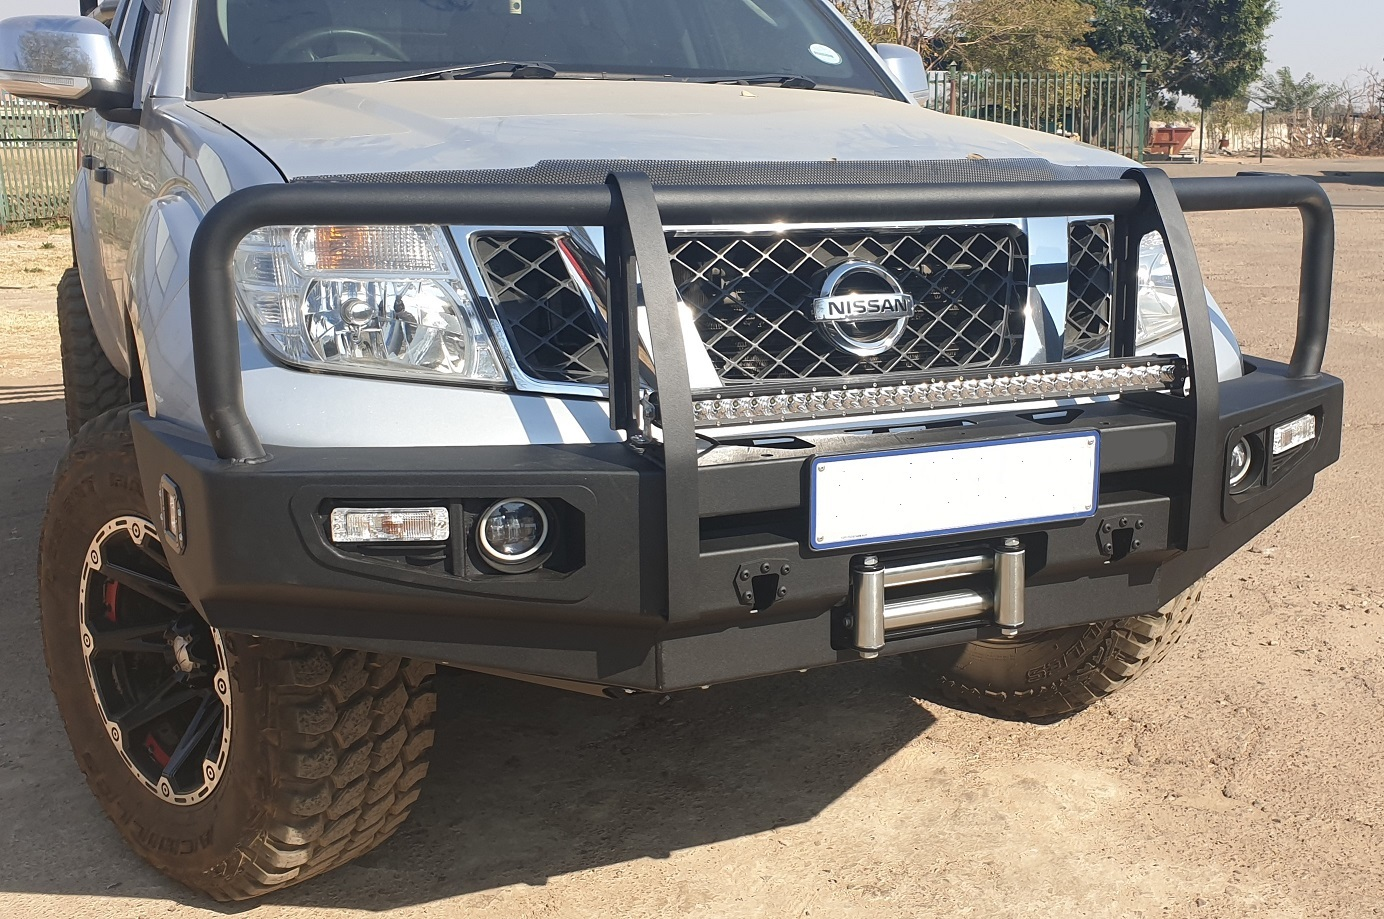 Nissan Navara D40 – Spec 2005 – 2017 Steel Replacement Bumper (Courier Not Included, Please Request Separate Quote)